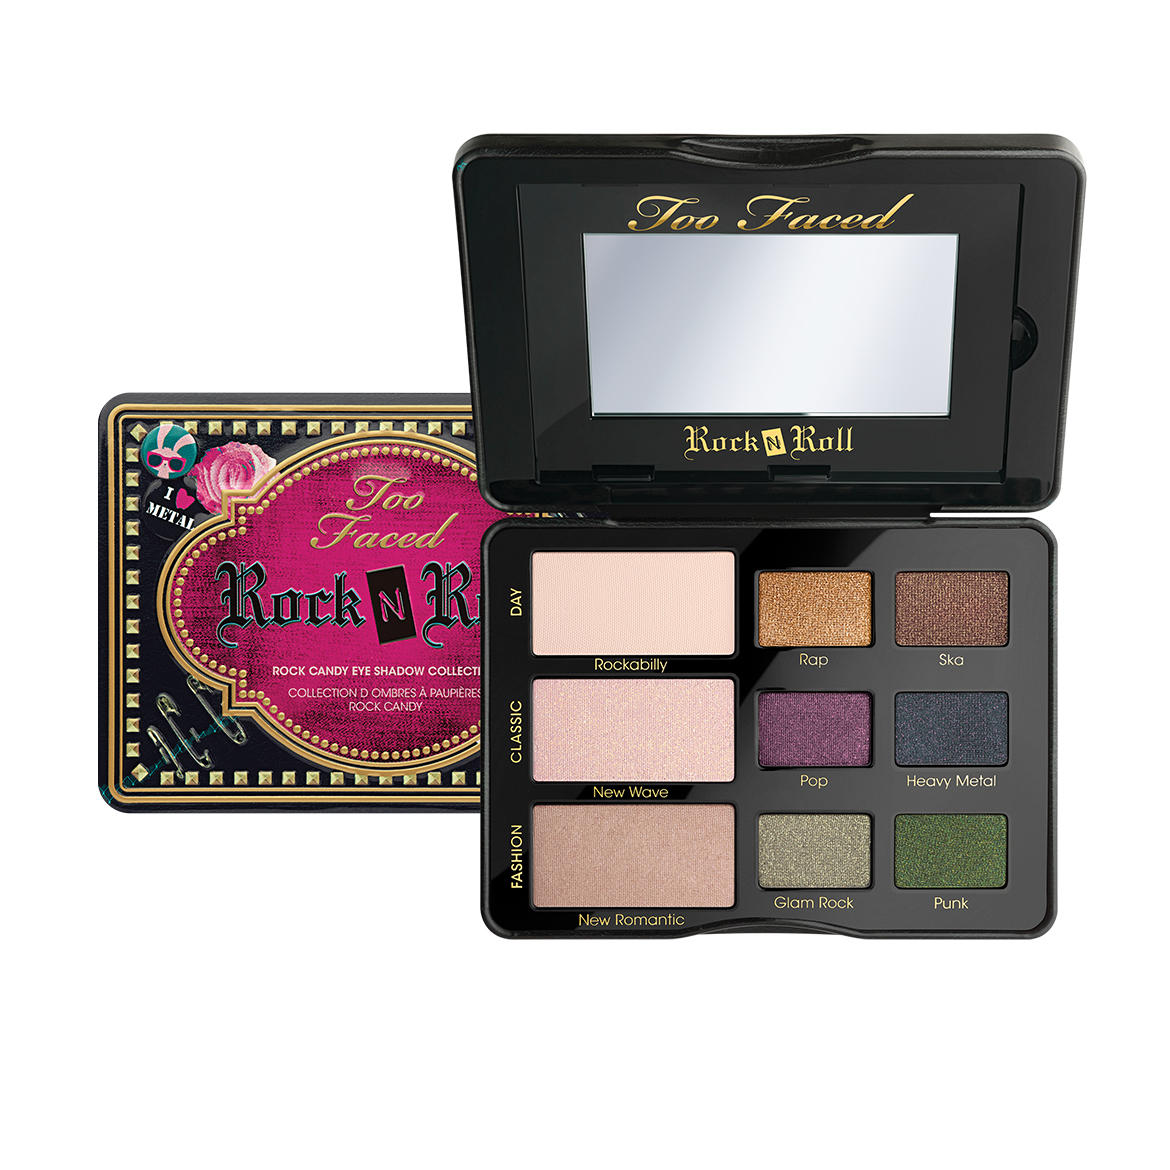 Too Faced Rock n' Roll Palette